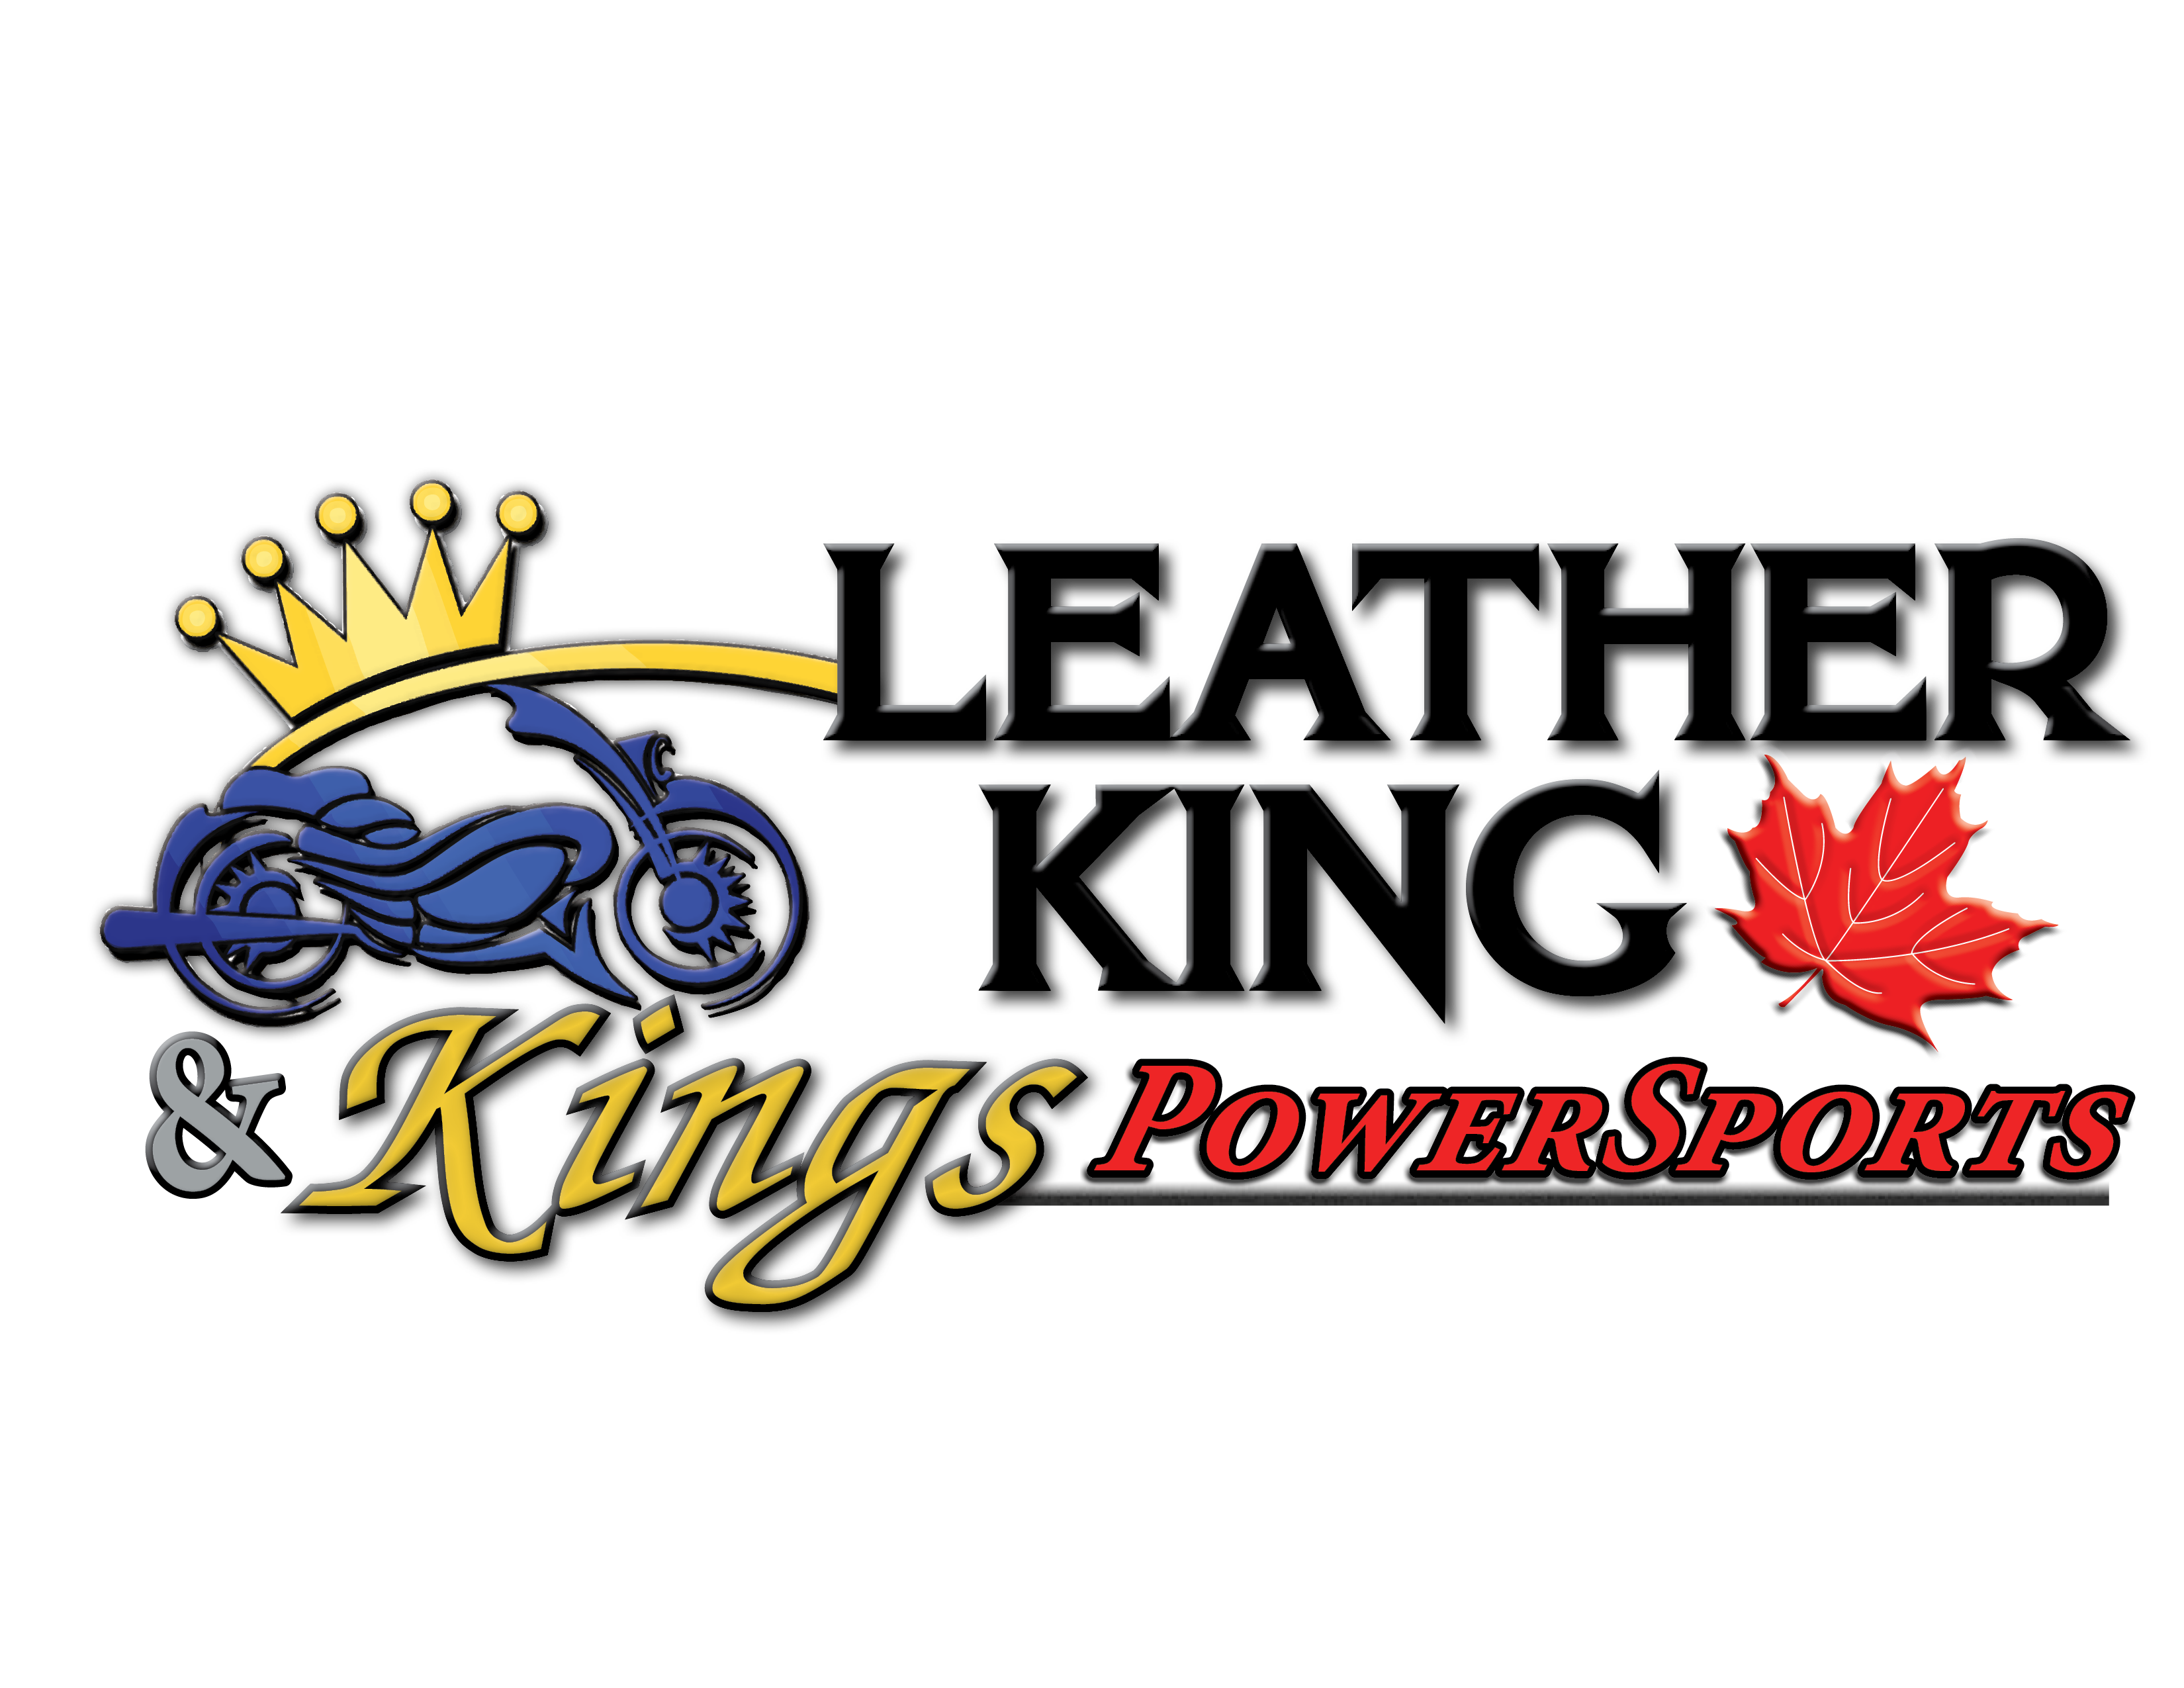 Kings Powersports by: Leather King